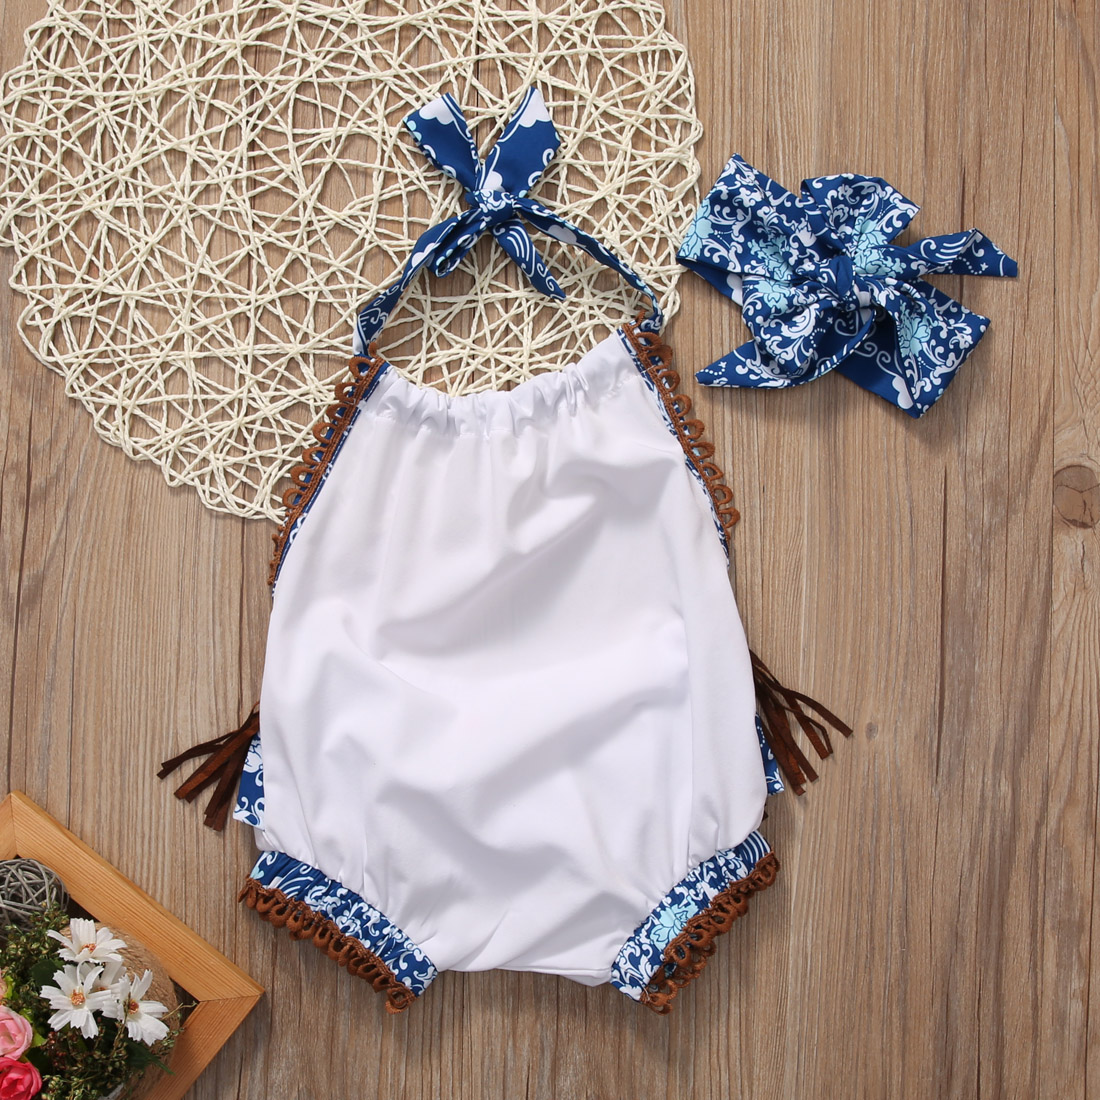 2pcs Baby Set Newborn Baby Girl Clothes Summer Cotton Sleeveless Floral Tassels Backless Romper+Headband Outfit Set Clothes 2017 floral baby romper newborn baby girl clothes ruffles sleeve bodysuit headband 2pcs outfit bebek giyim sunsuit 0 24m